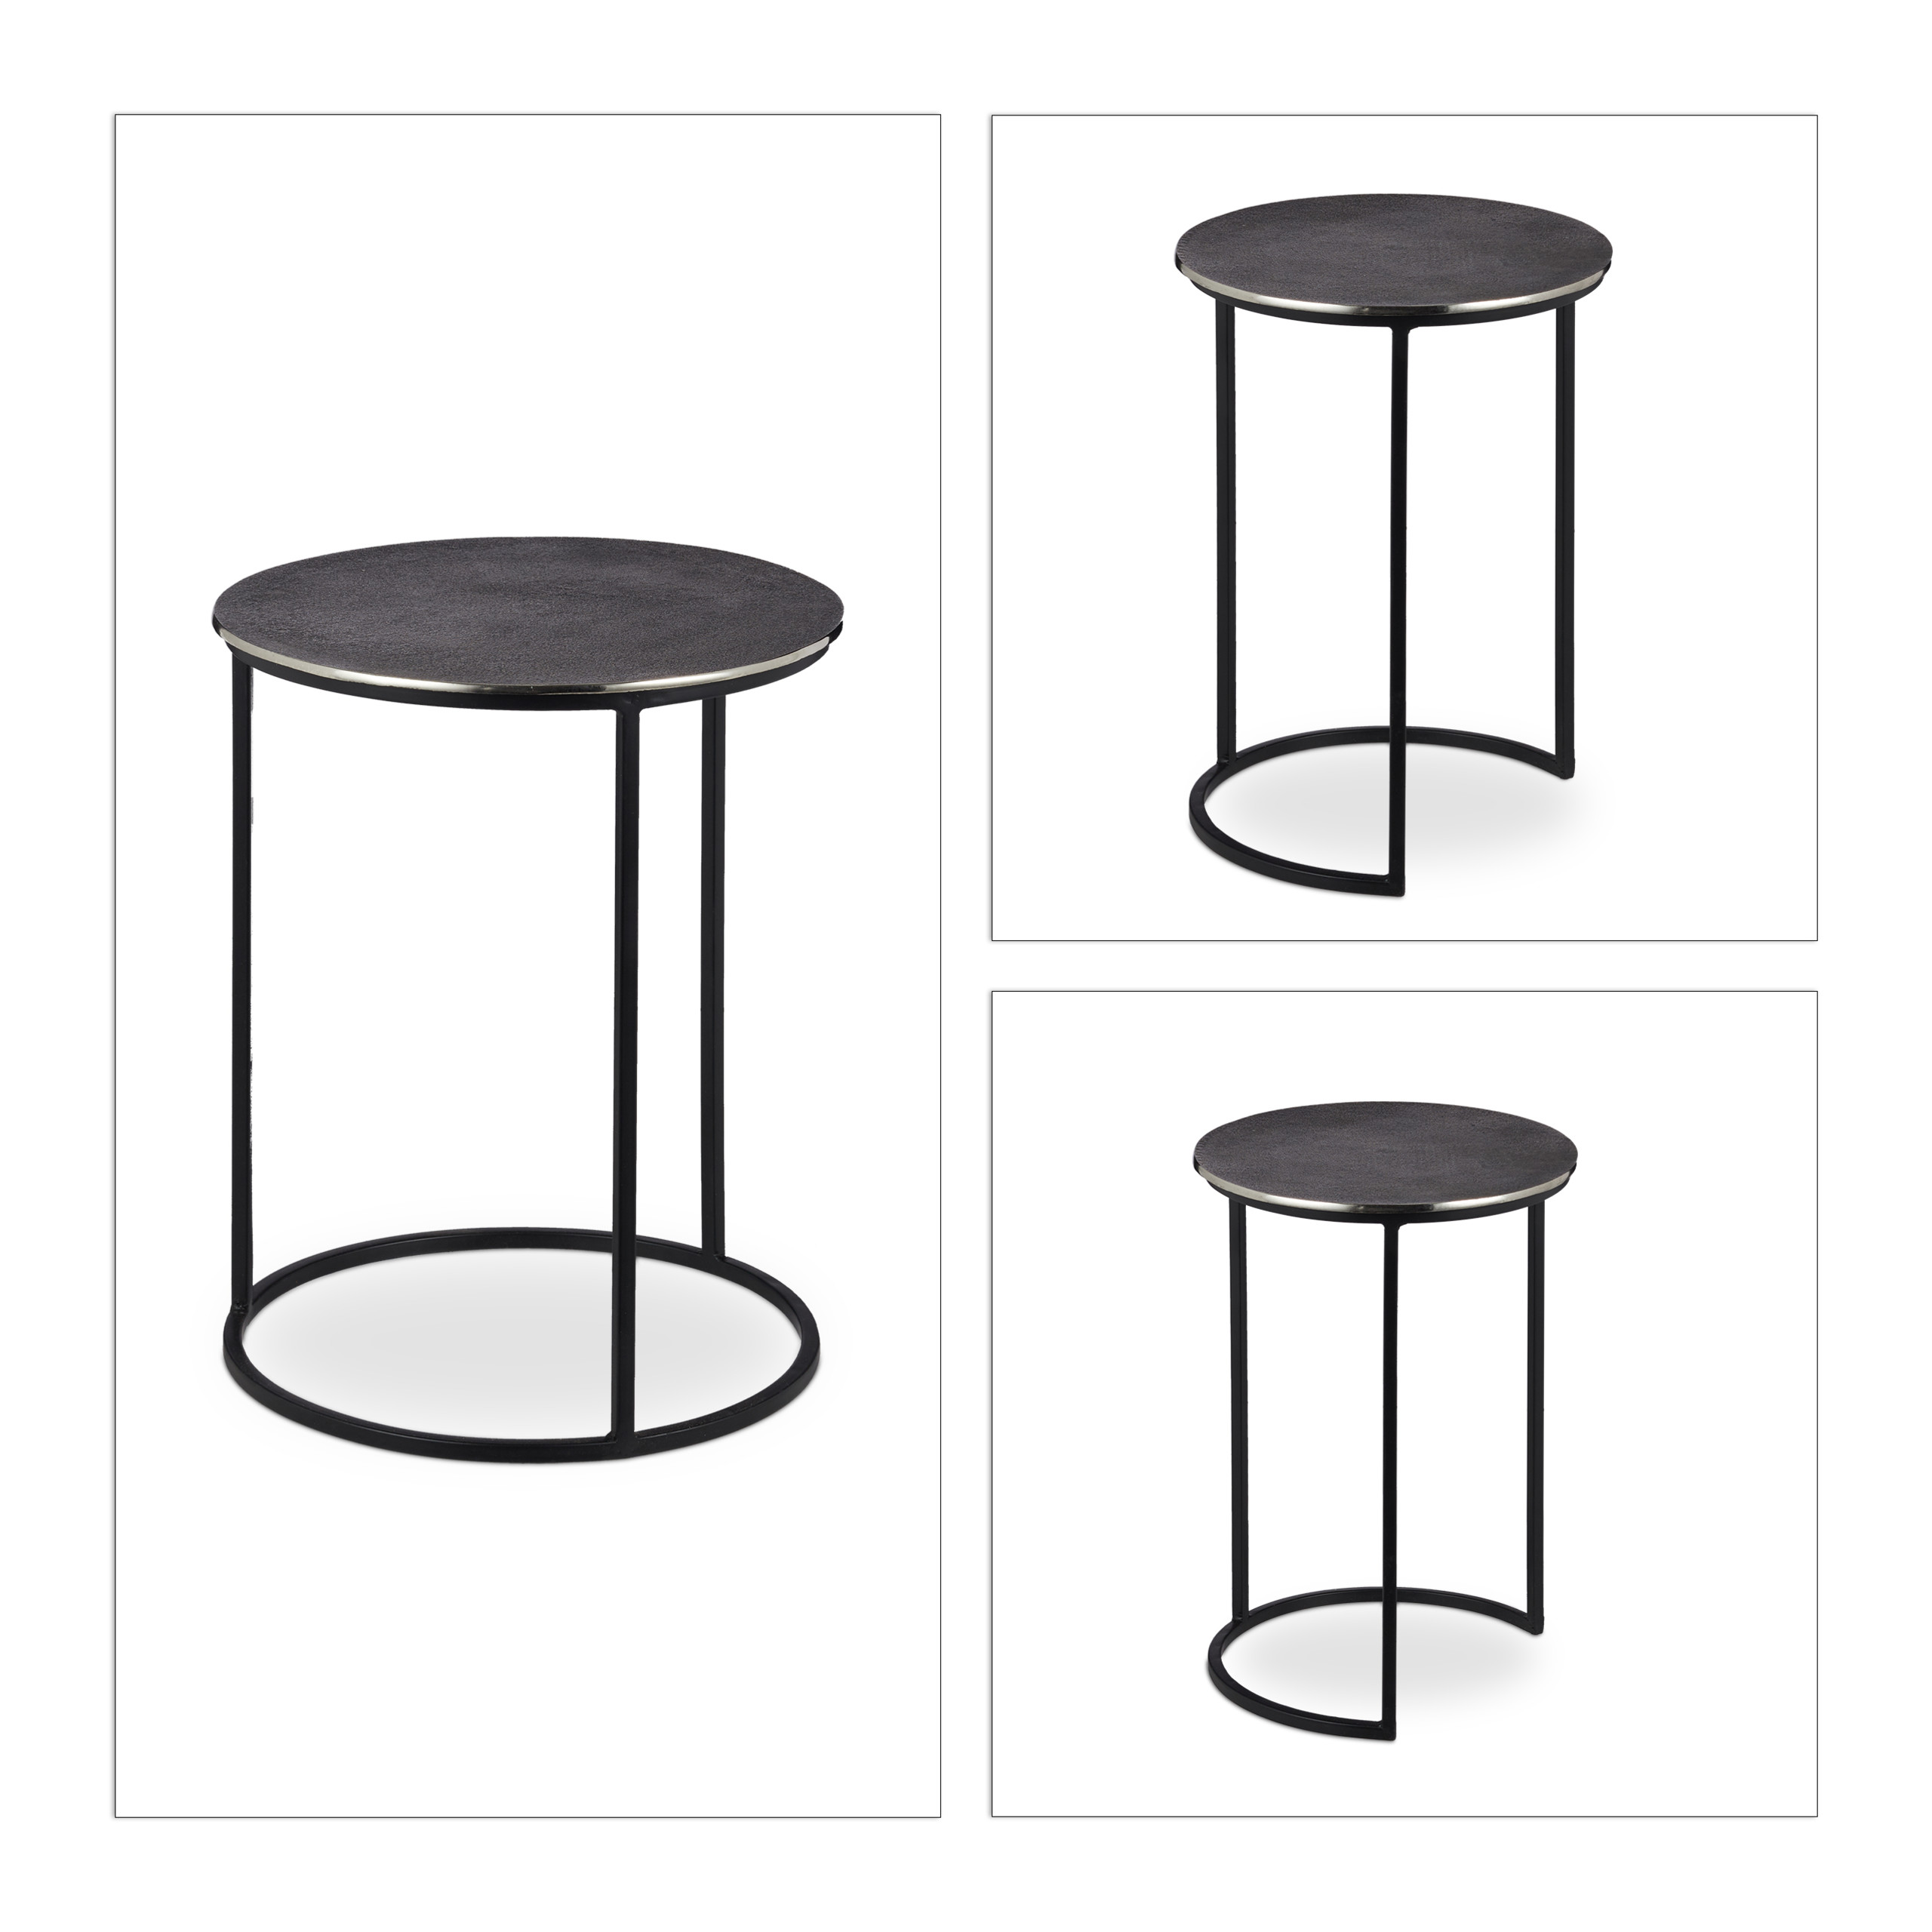 Antique-Style-Nesting-Tables-Set-of-3-Round-Decorative-Stands-Side-Table thumbnail 5